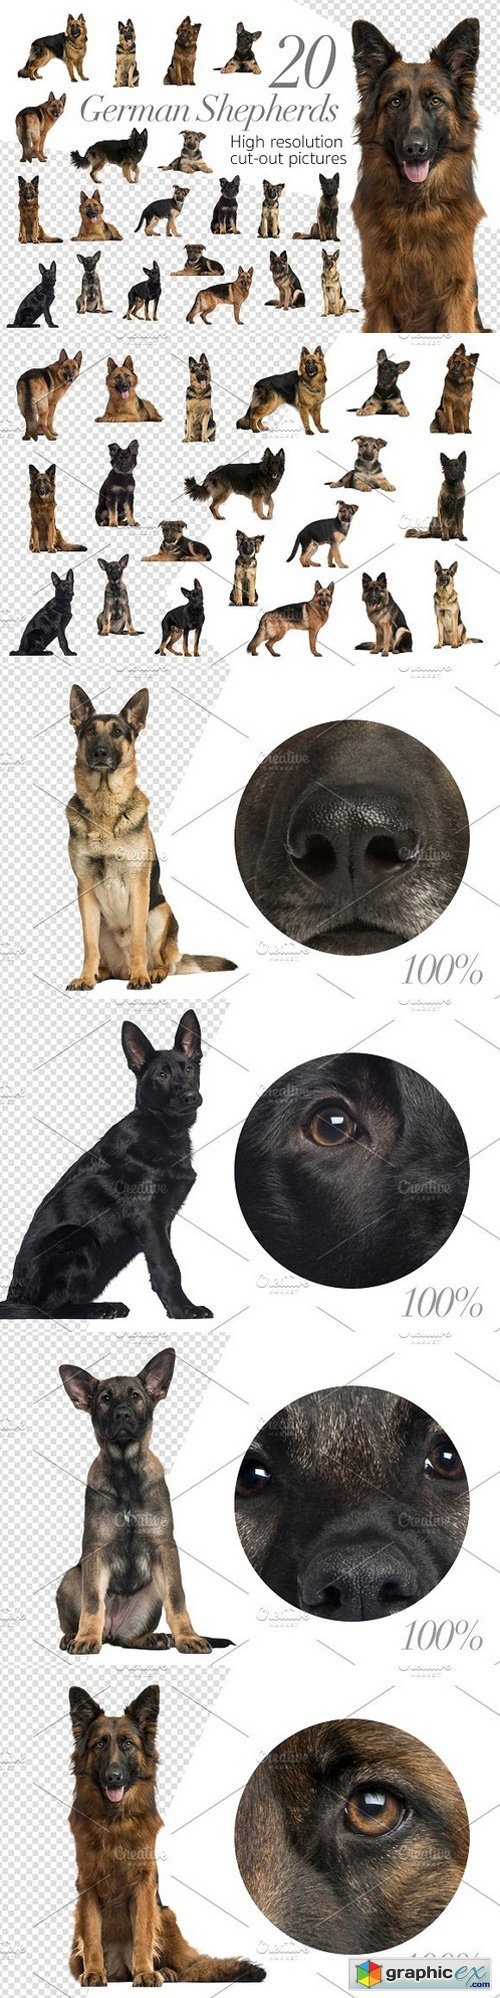 20 German Shepherds - Cut-out Pics